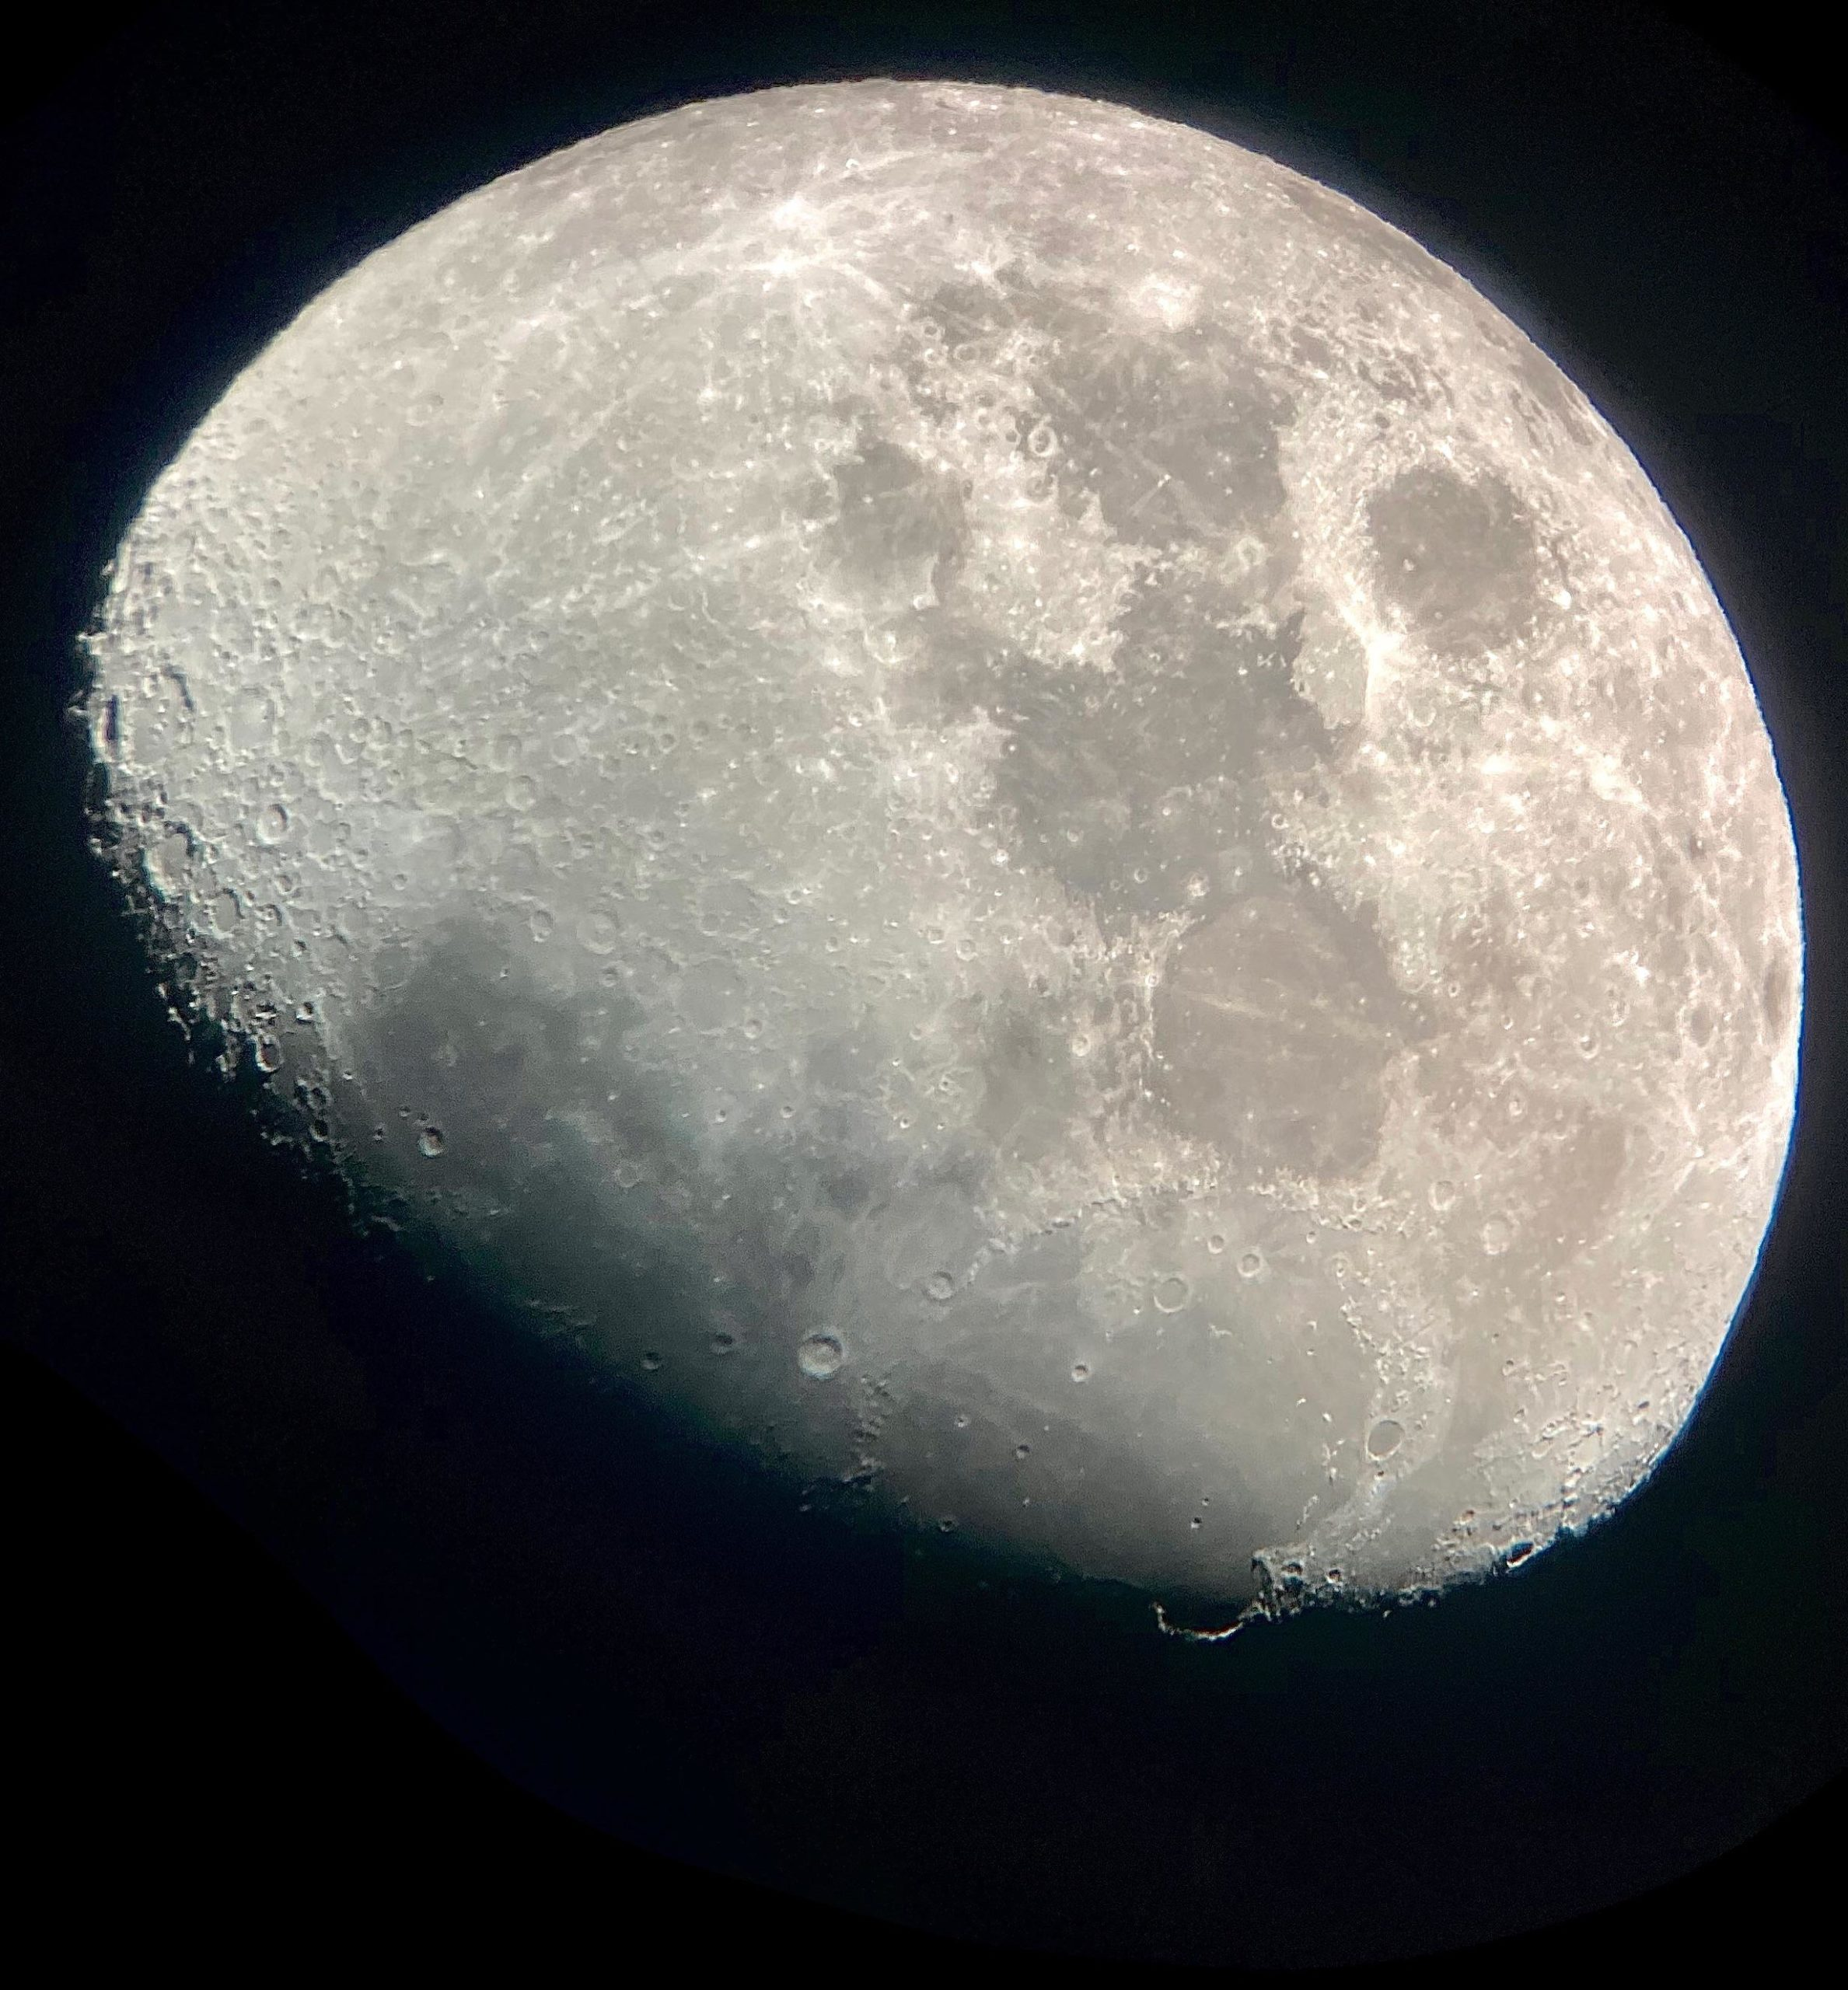 This might be my best picture of the moon since getting my first telescope about a month ago